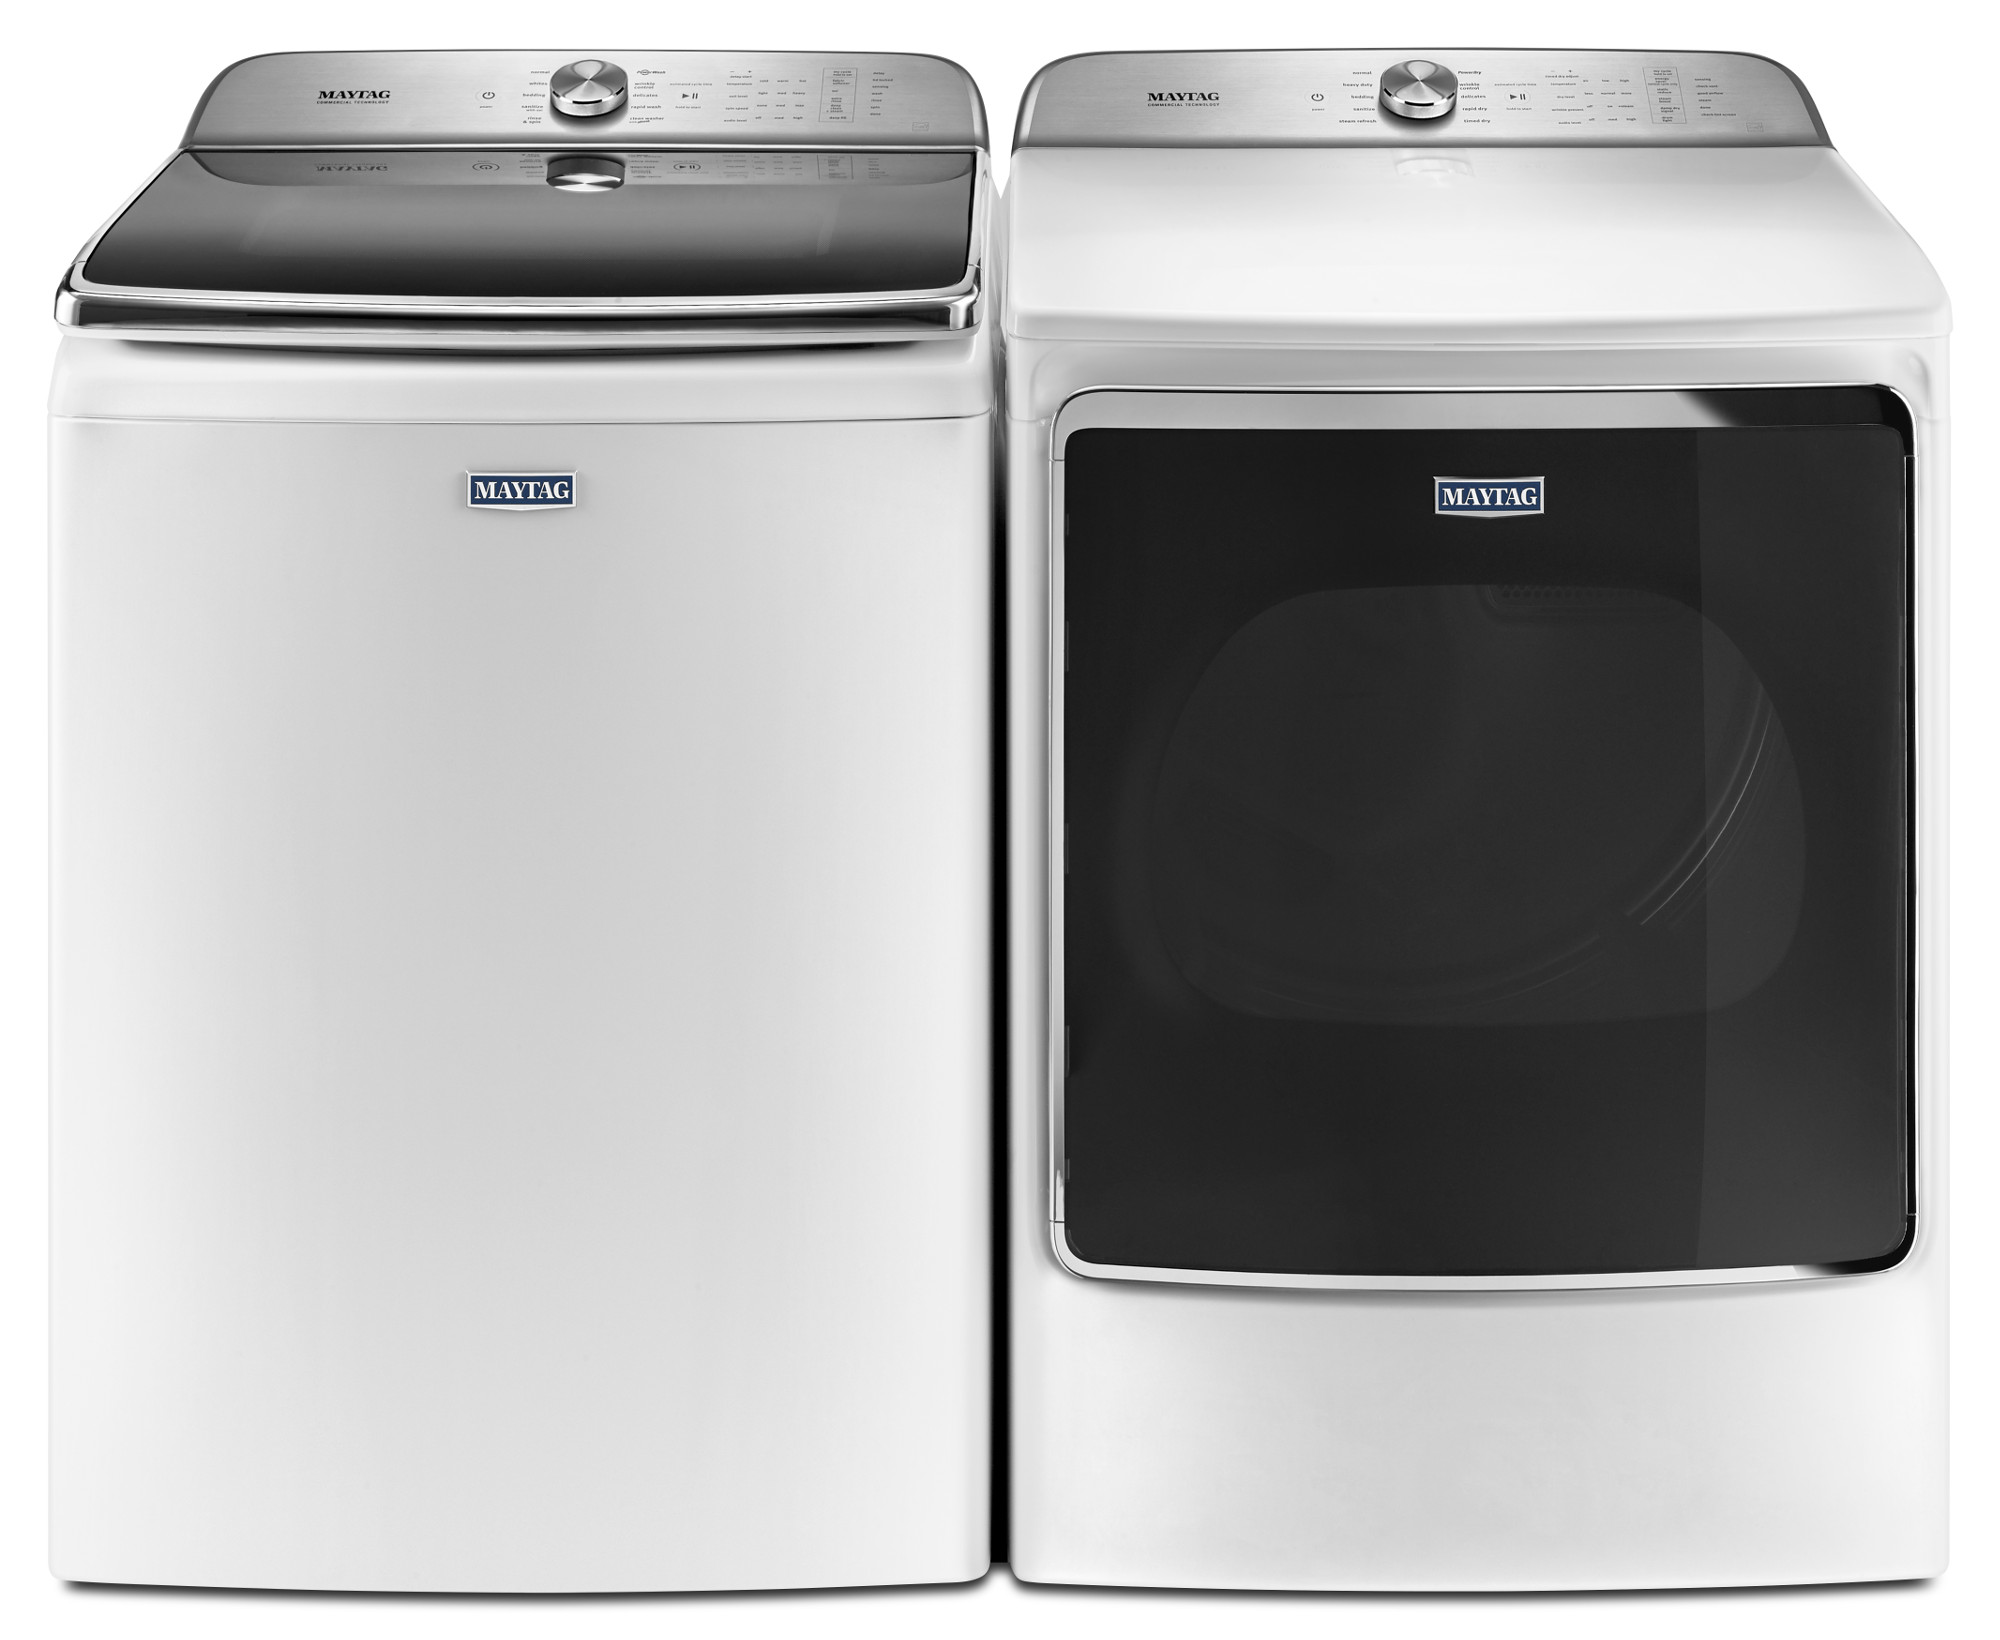 Maytag MEDB955FW 9.2 cu. ft. Front Load Electric Dryer w/ PowerDry System and Extra Moisture Sensor - White